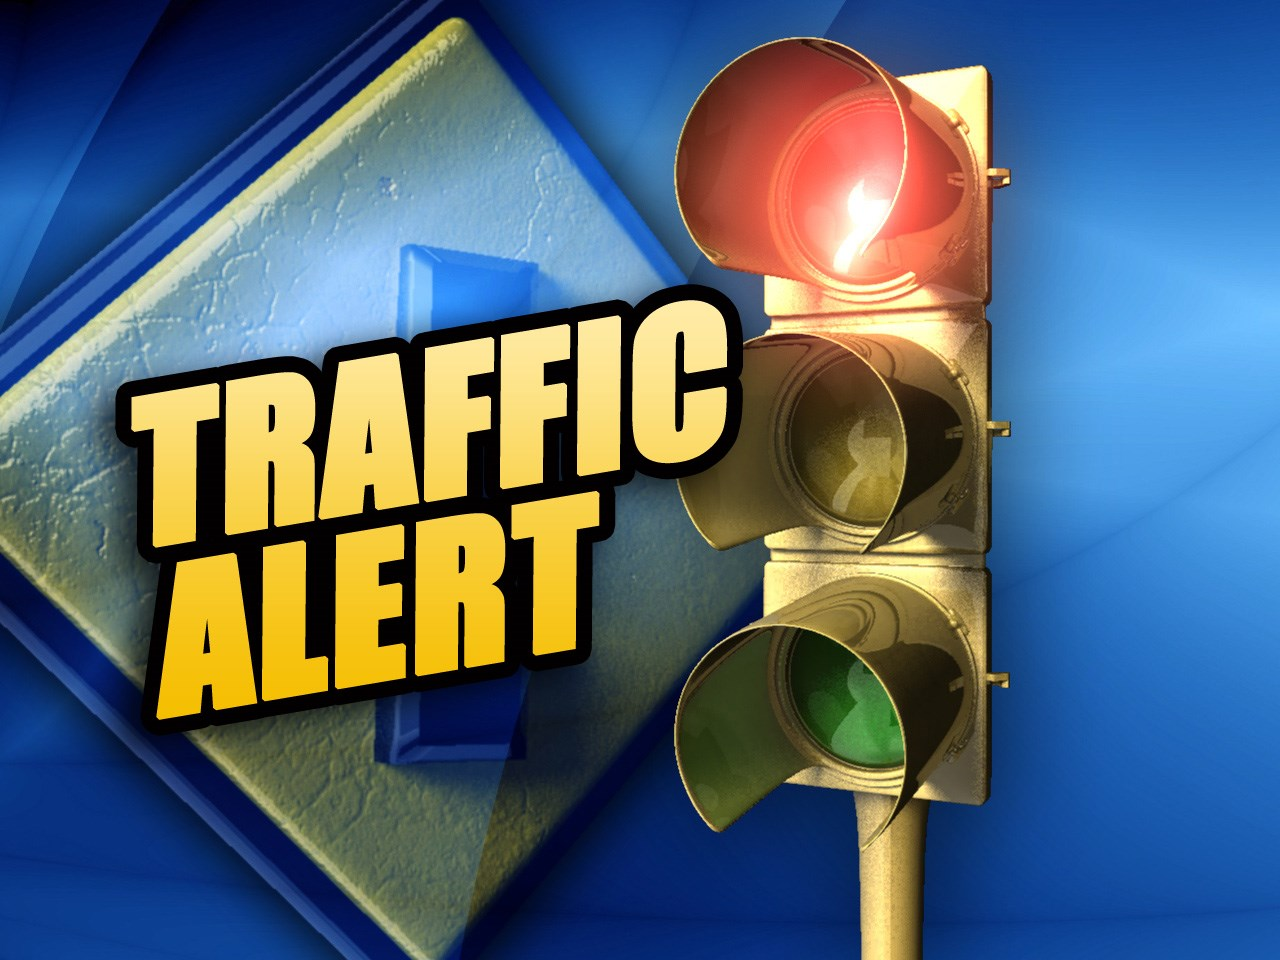 Rolling closures and flagging operations on Whitehall Avenue will begin Tuesday, Jan. 28 and may cause some traffic delays in the area. (Photo: Courtesy MGN)